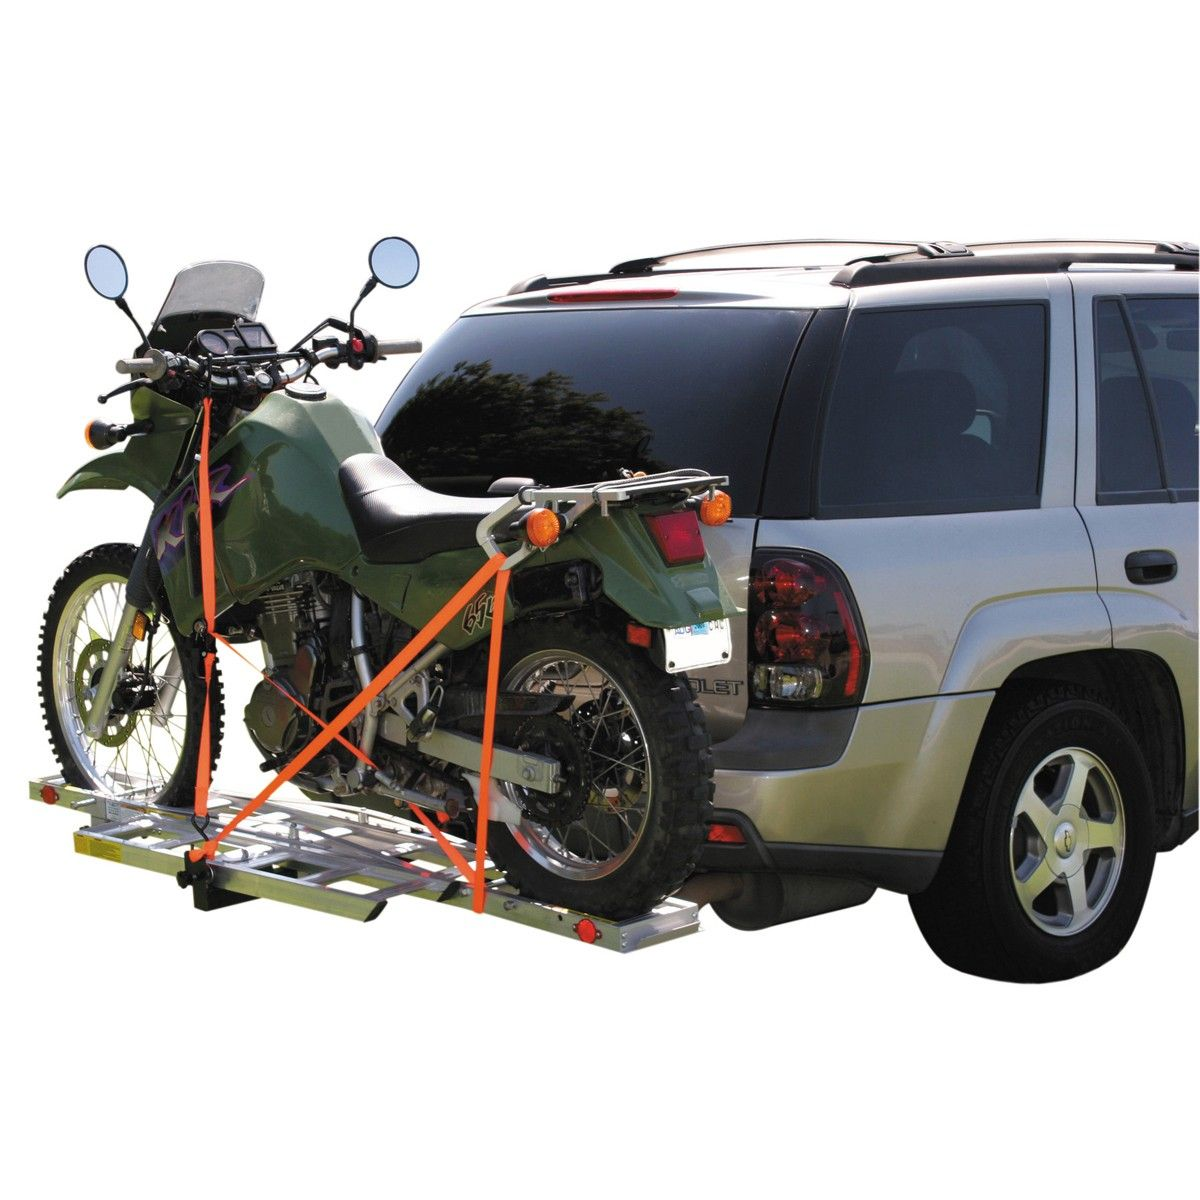 400 Lb Receiver Mount Motorcycle Carrier Motorcycle Carrier Adventure Motorcycle Gear Motorcycle